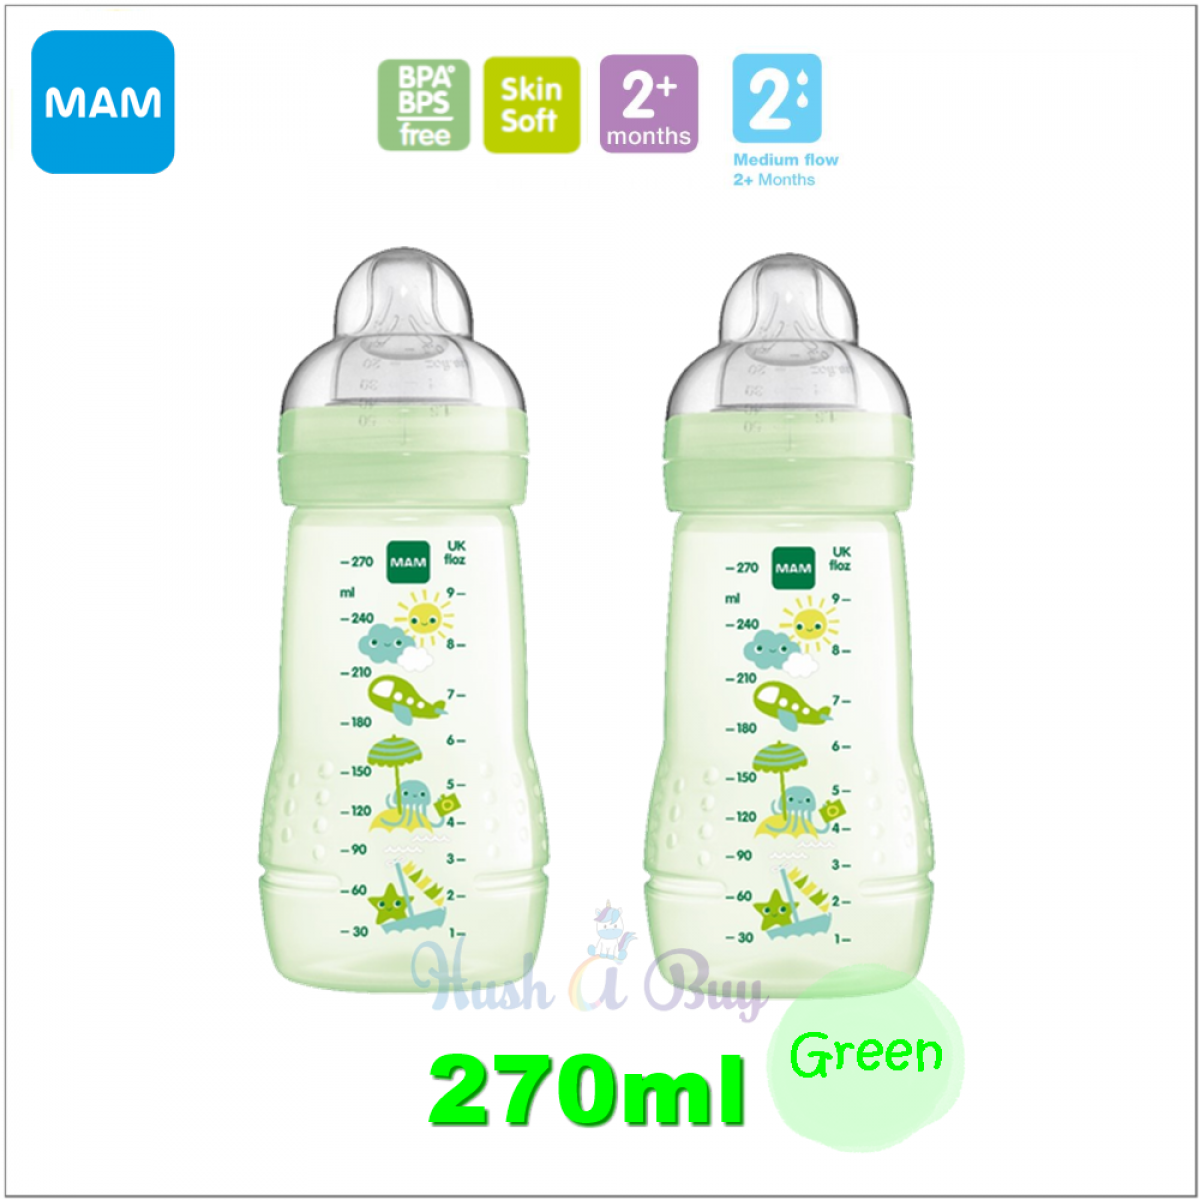 3183ff3c9573 ... MAM Easy Active Baby Feeding Bottle 270ml with Teat Size 2 - Double  Pack ...